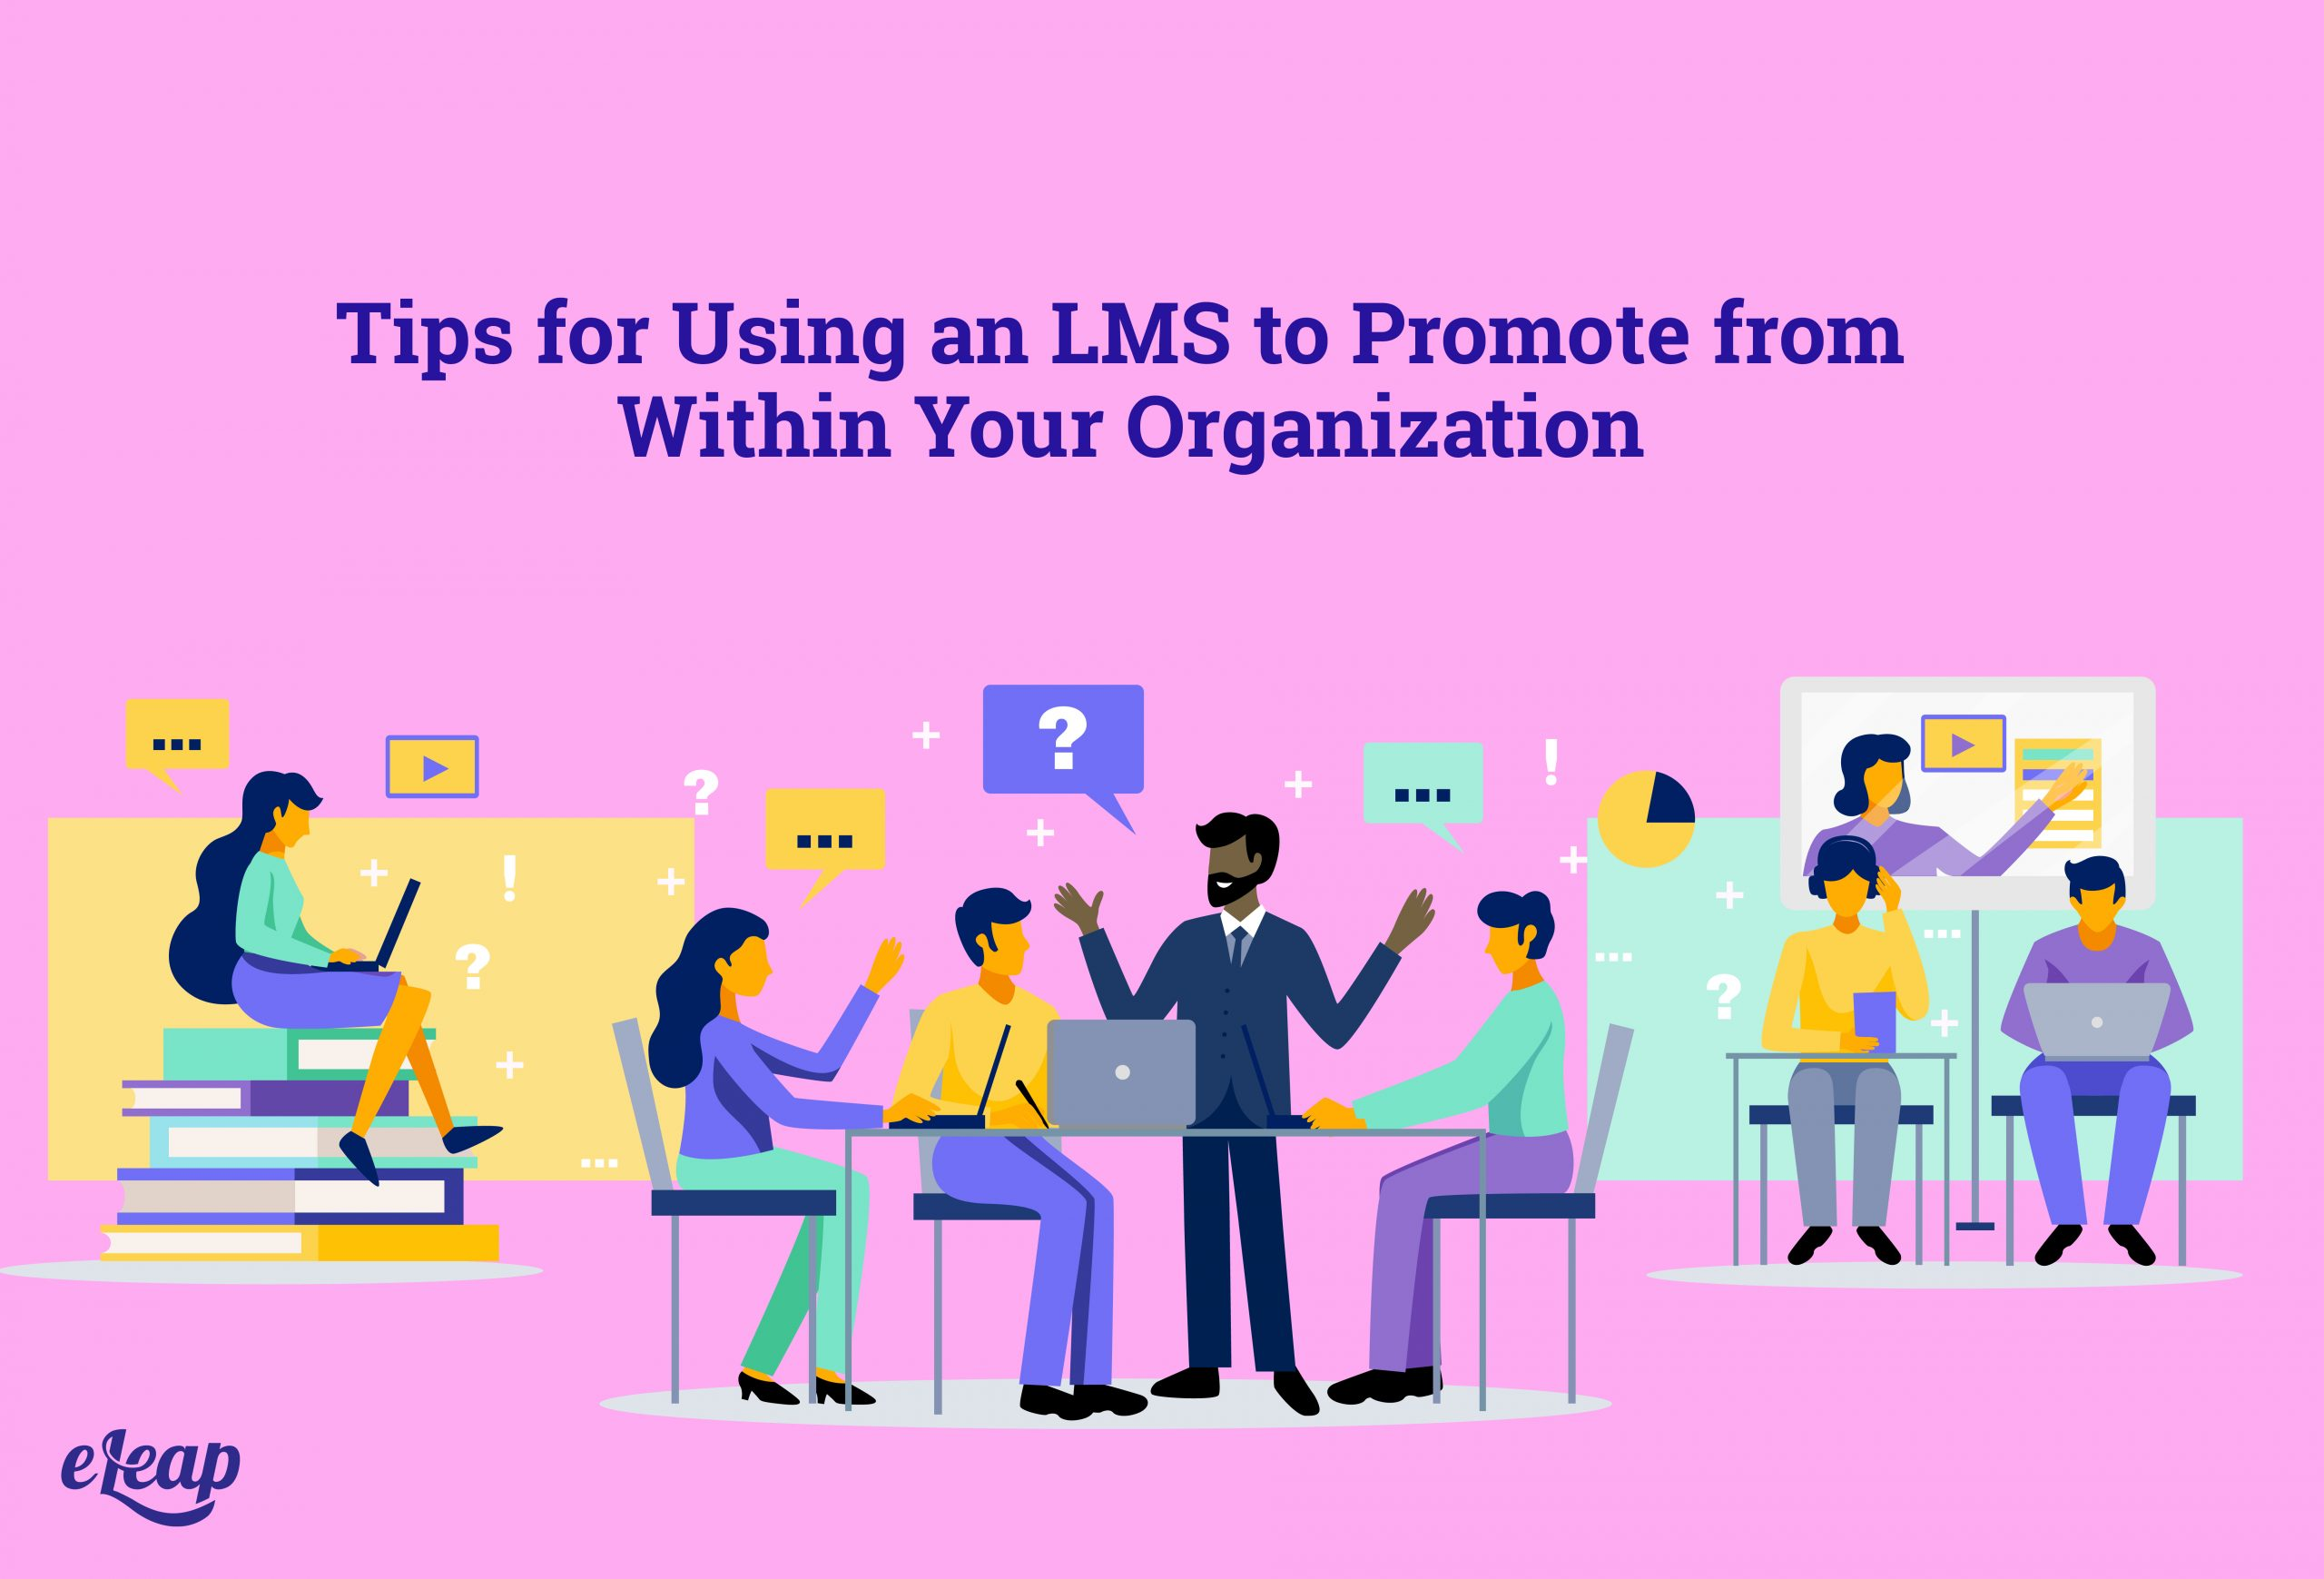 Tips for Using an LMS to Promote from Within Your Organization